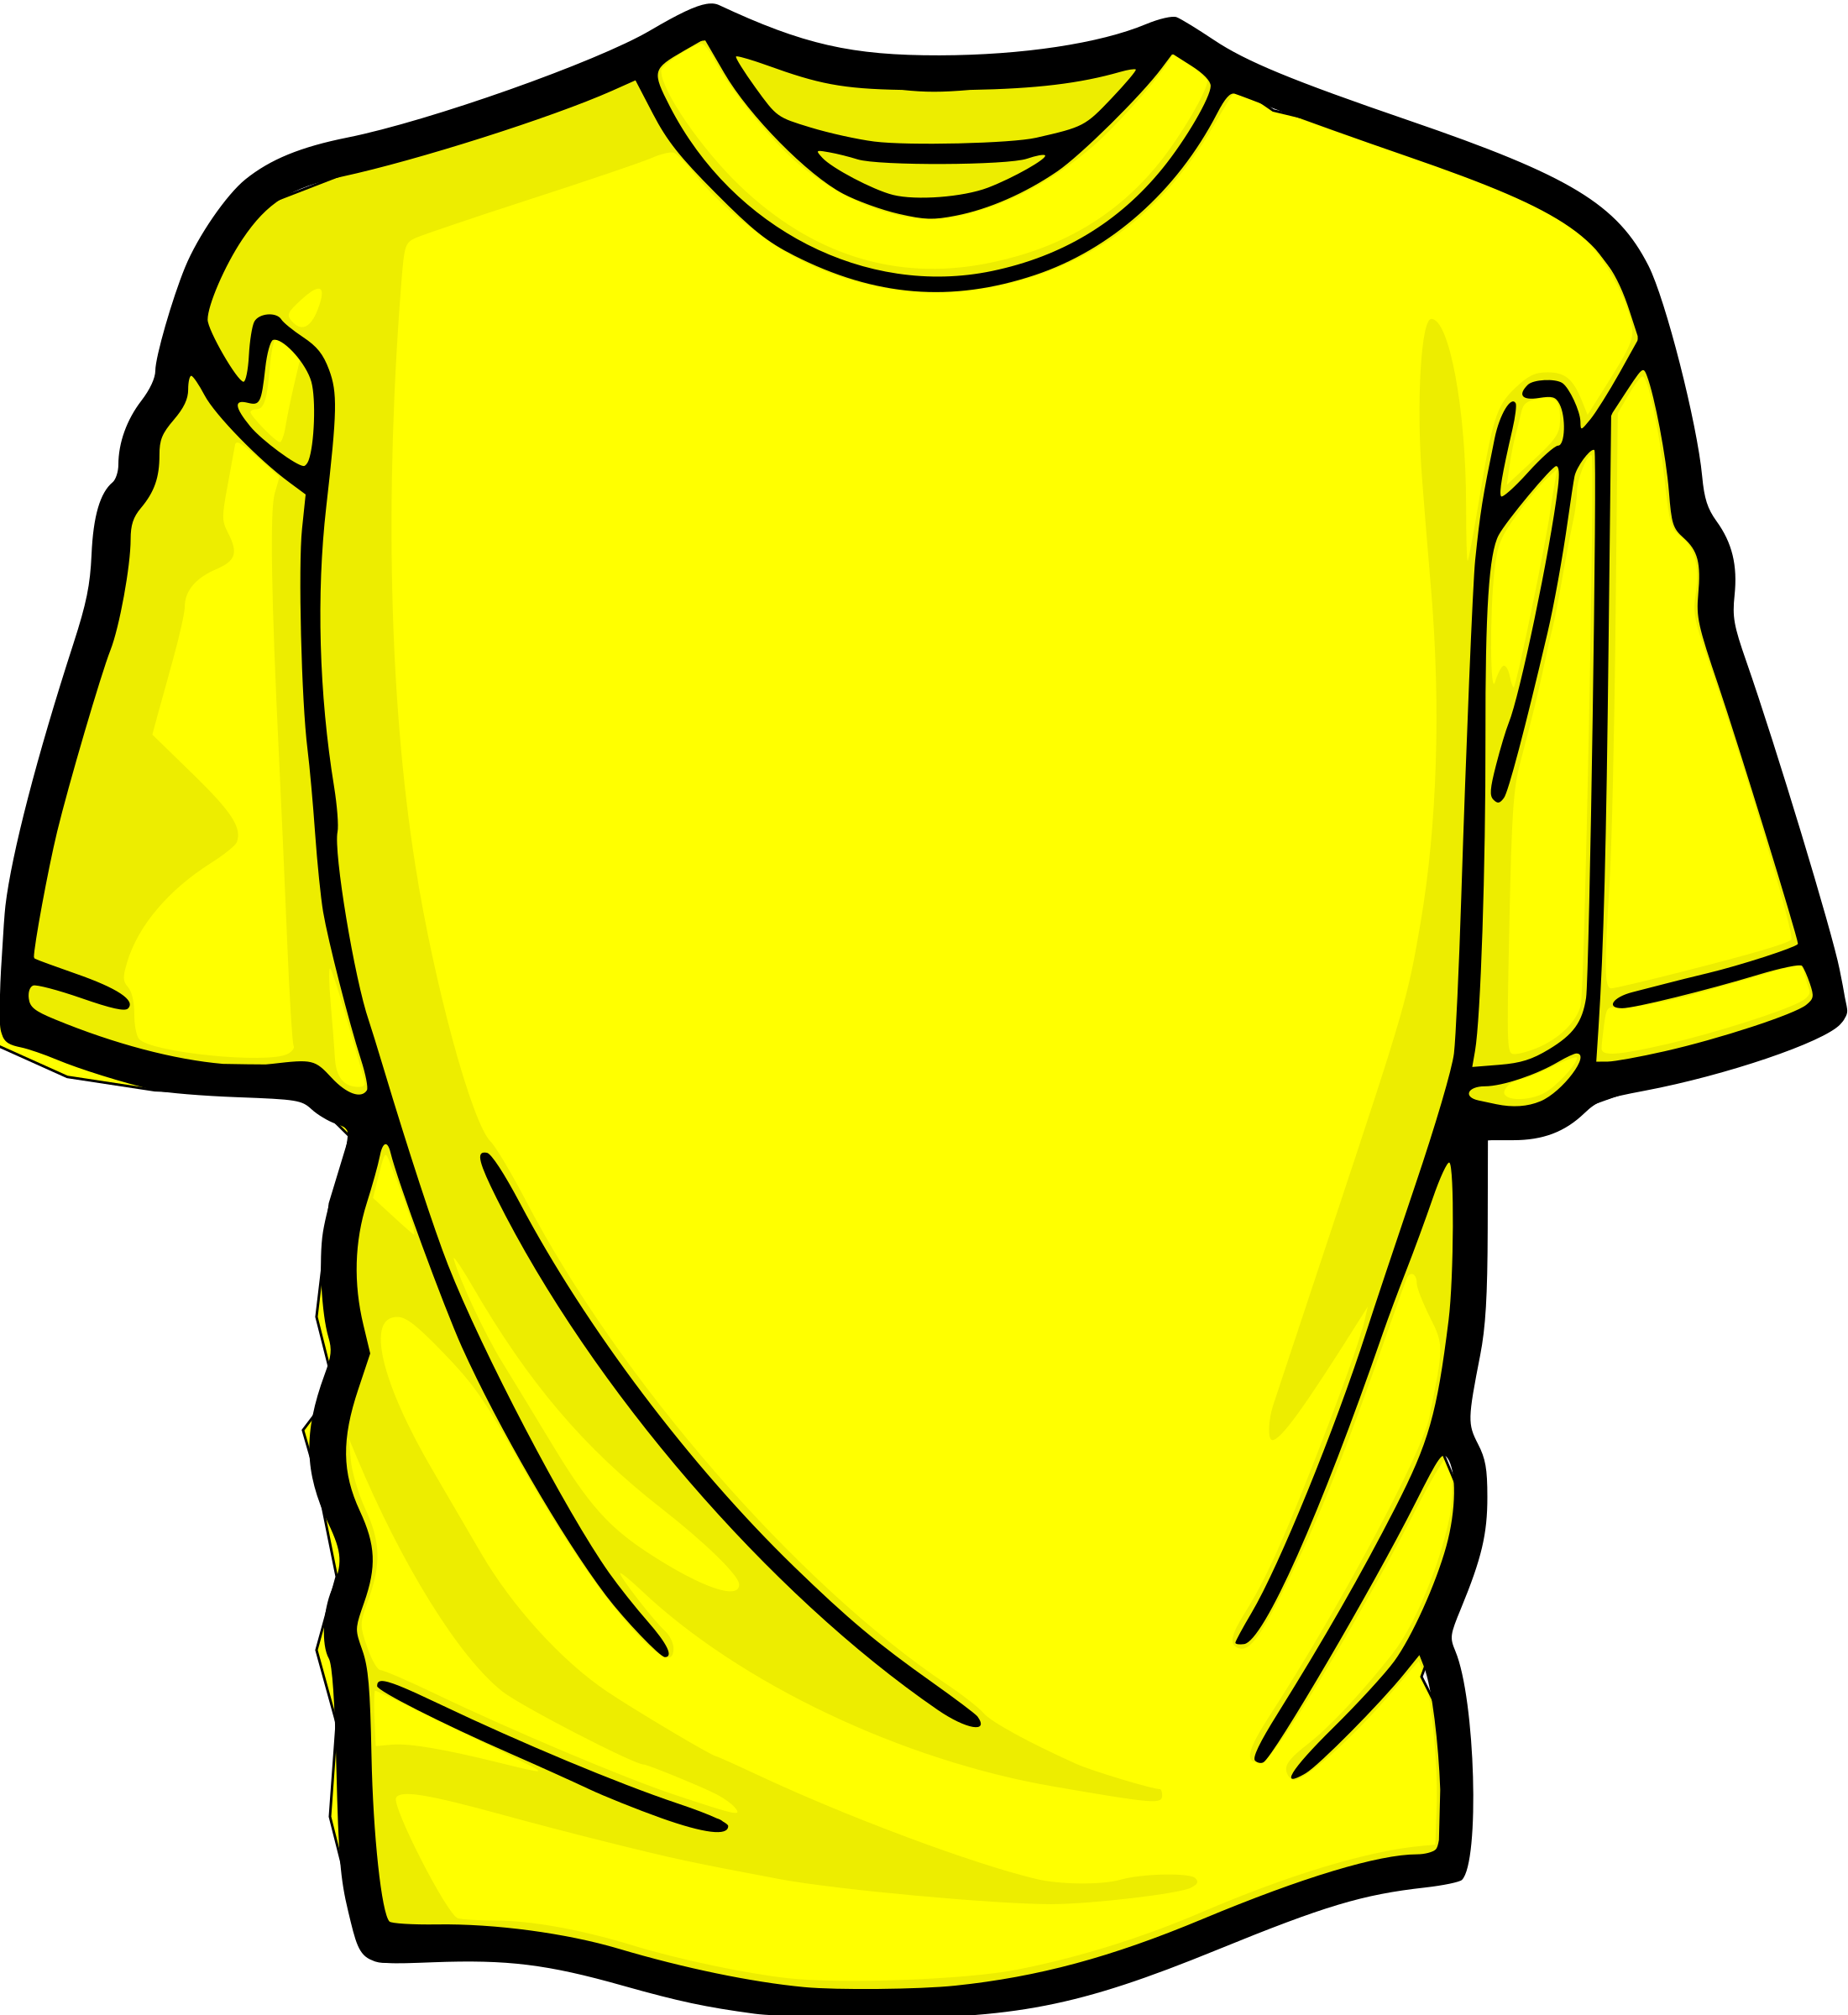 T-Shirt_yelow by asrafil